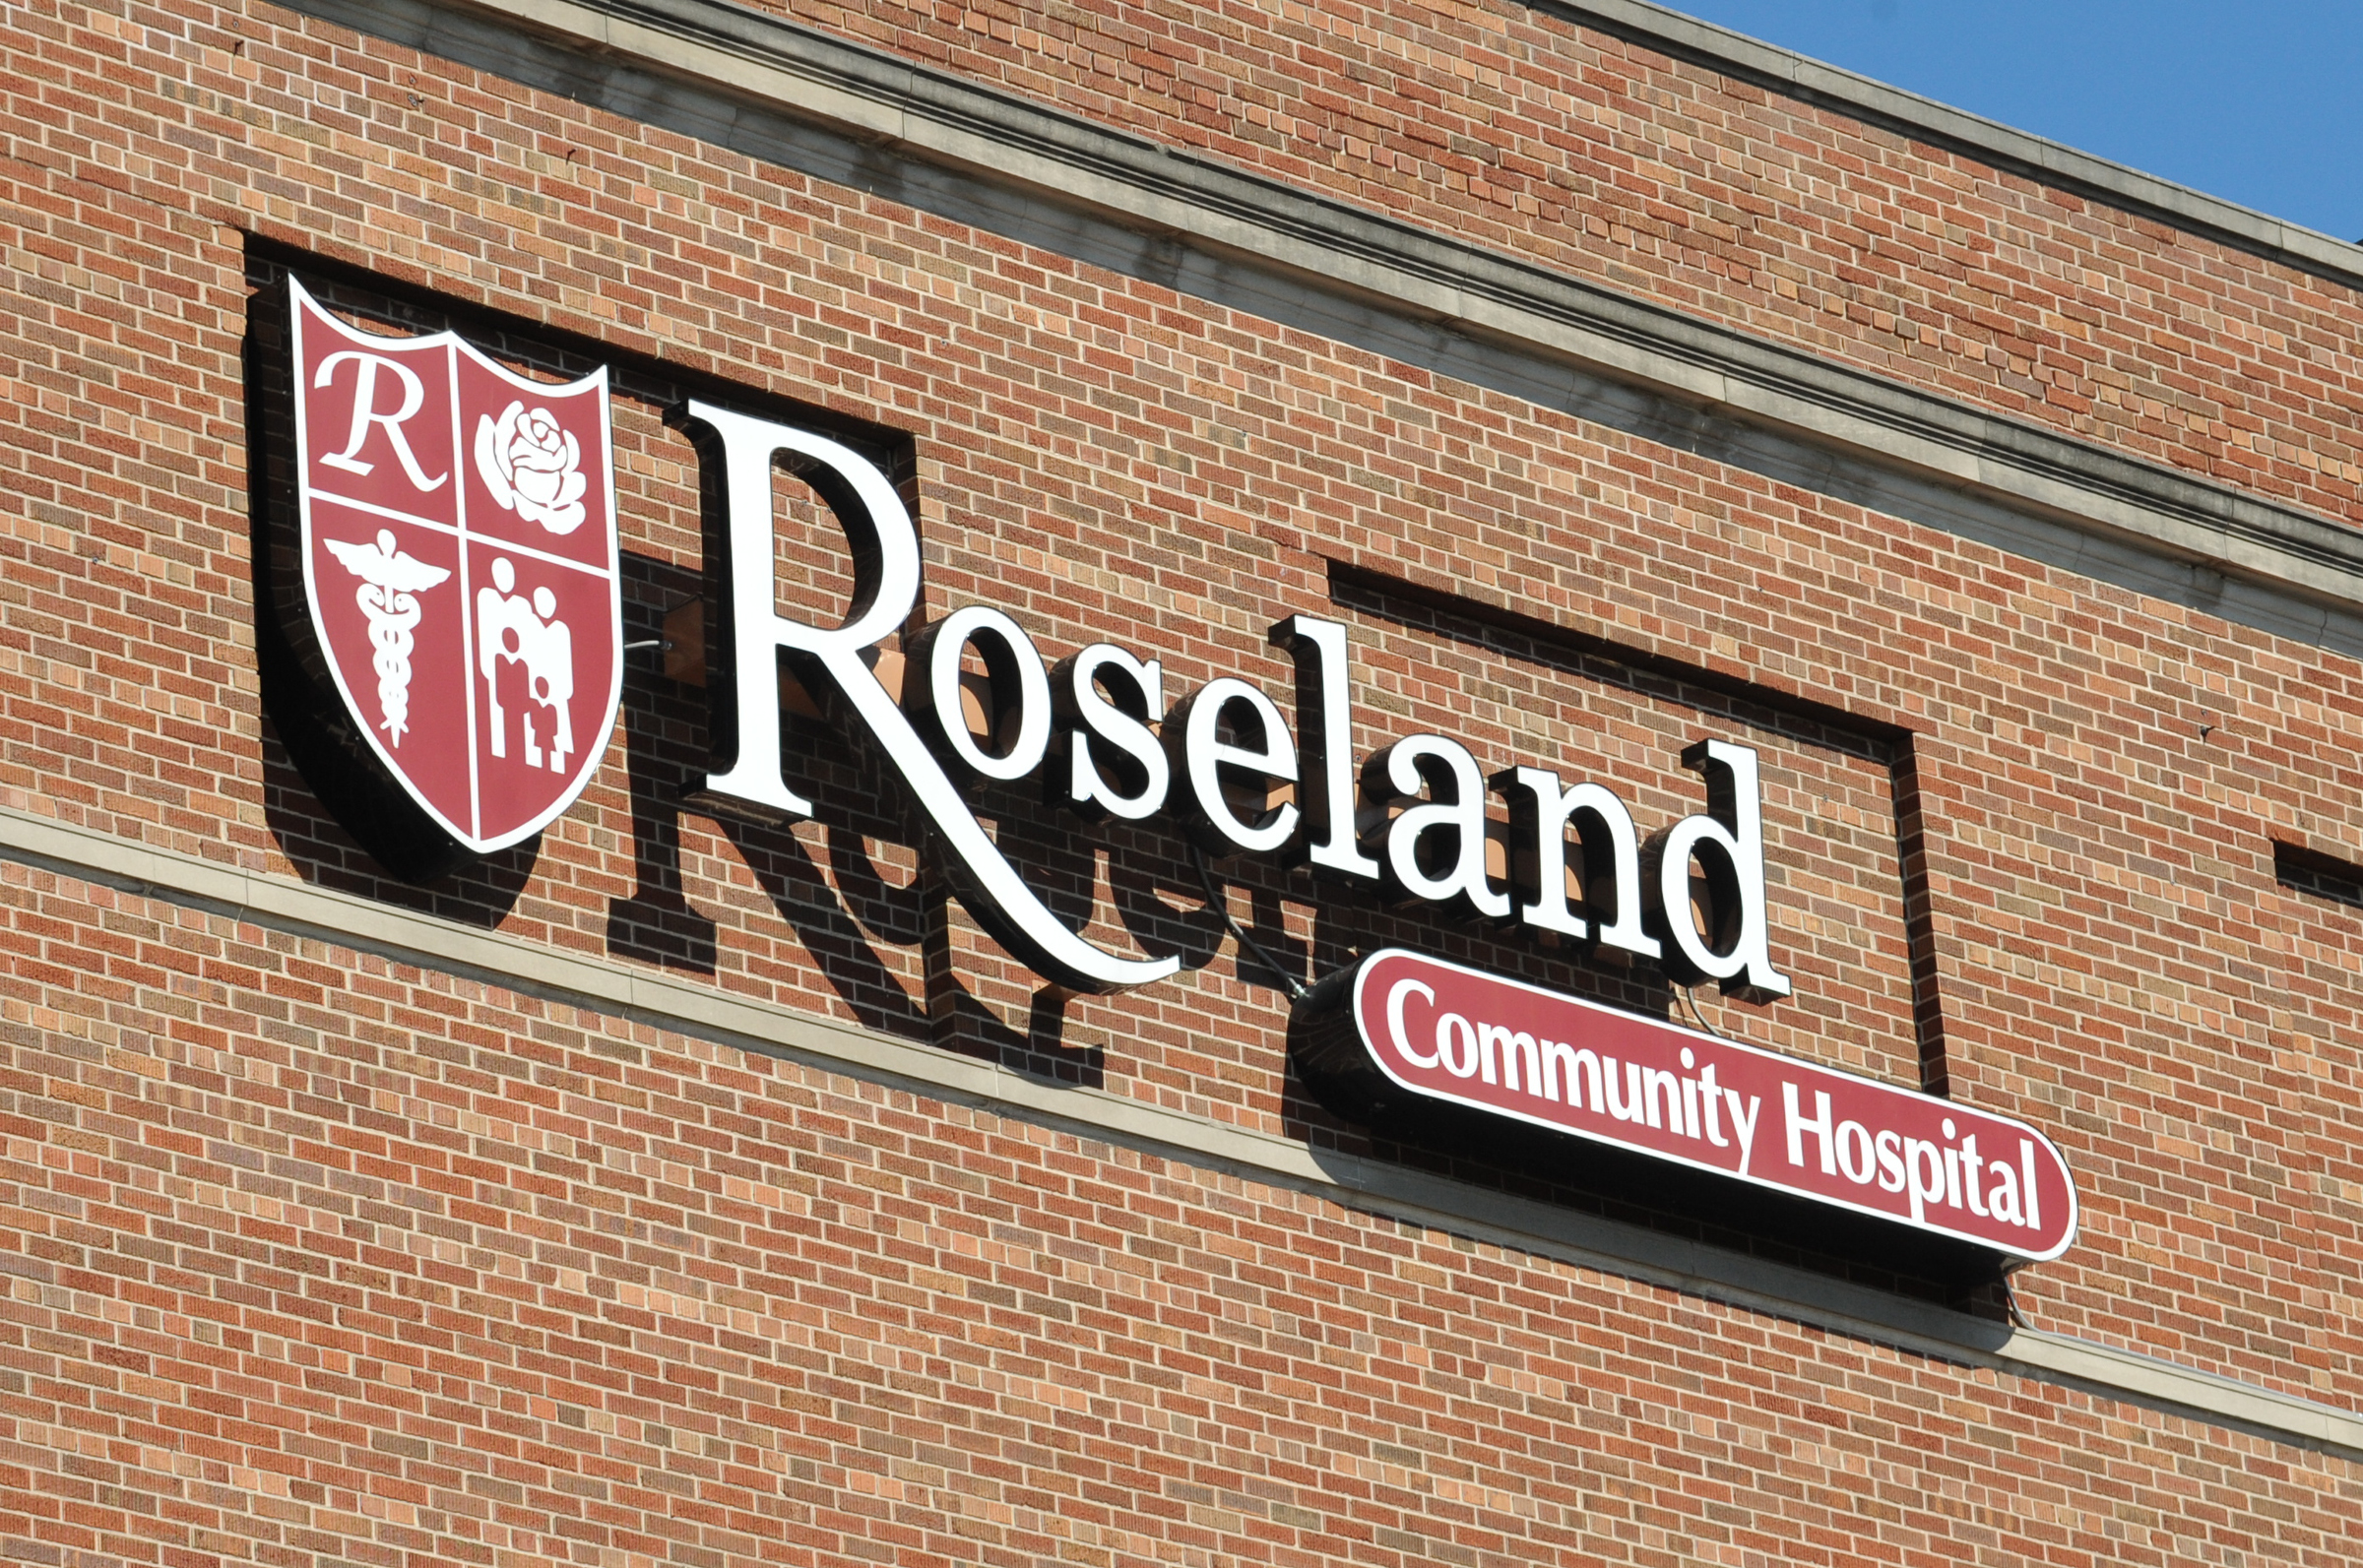 Roseland Community Hospital, 45 W. 111th St., has given notice that it plans to suspend services in its adolescent behavioral health unit.